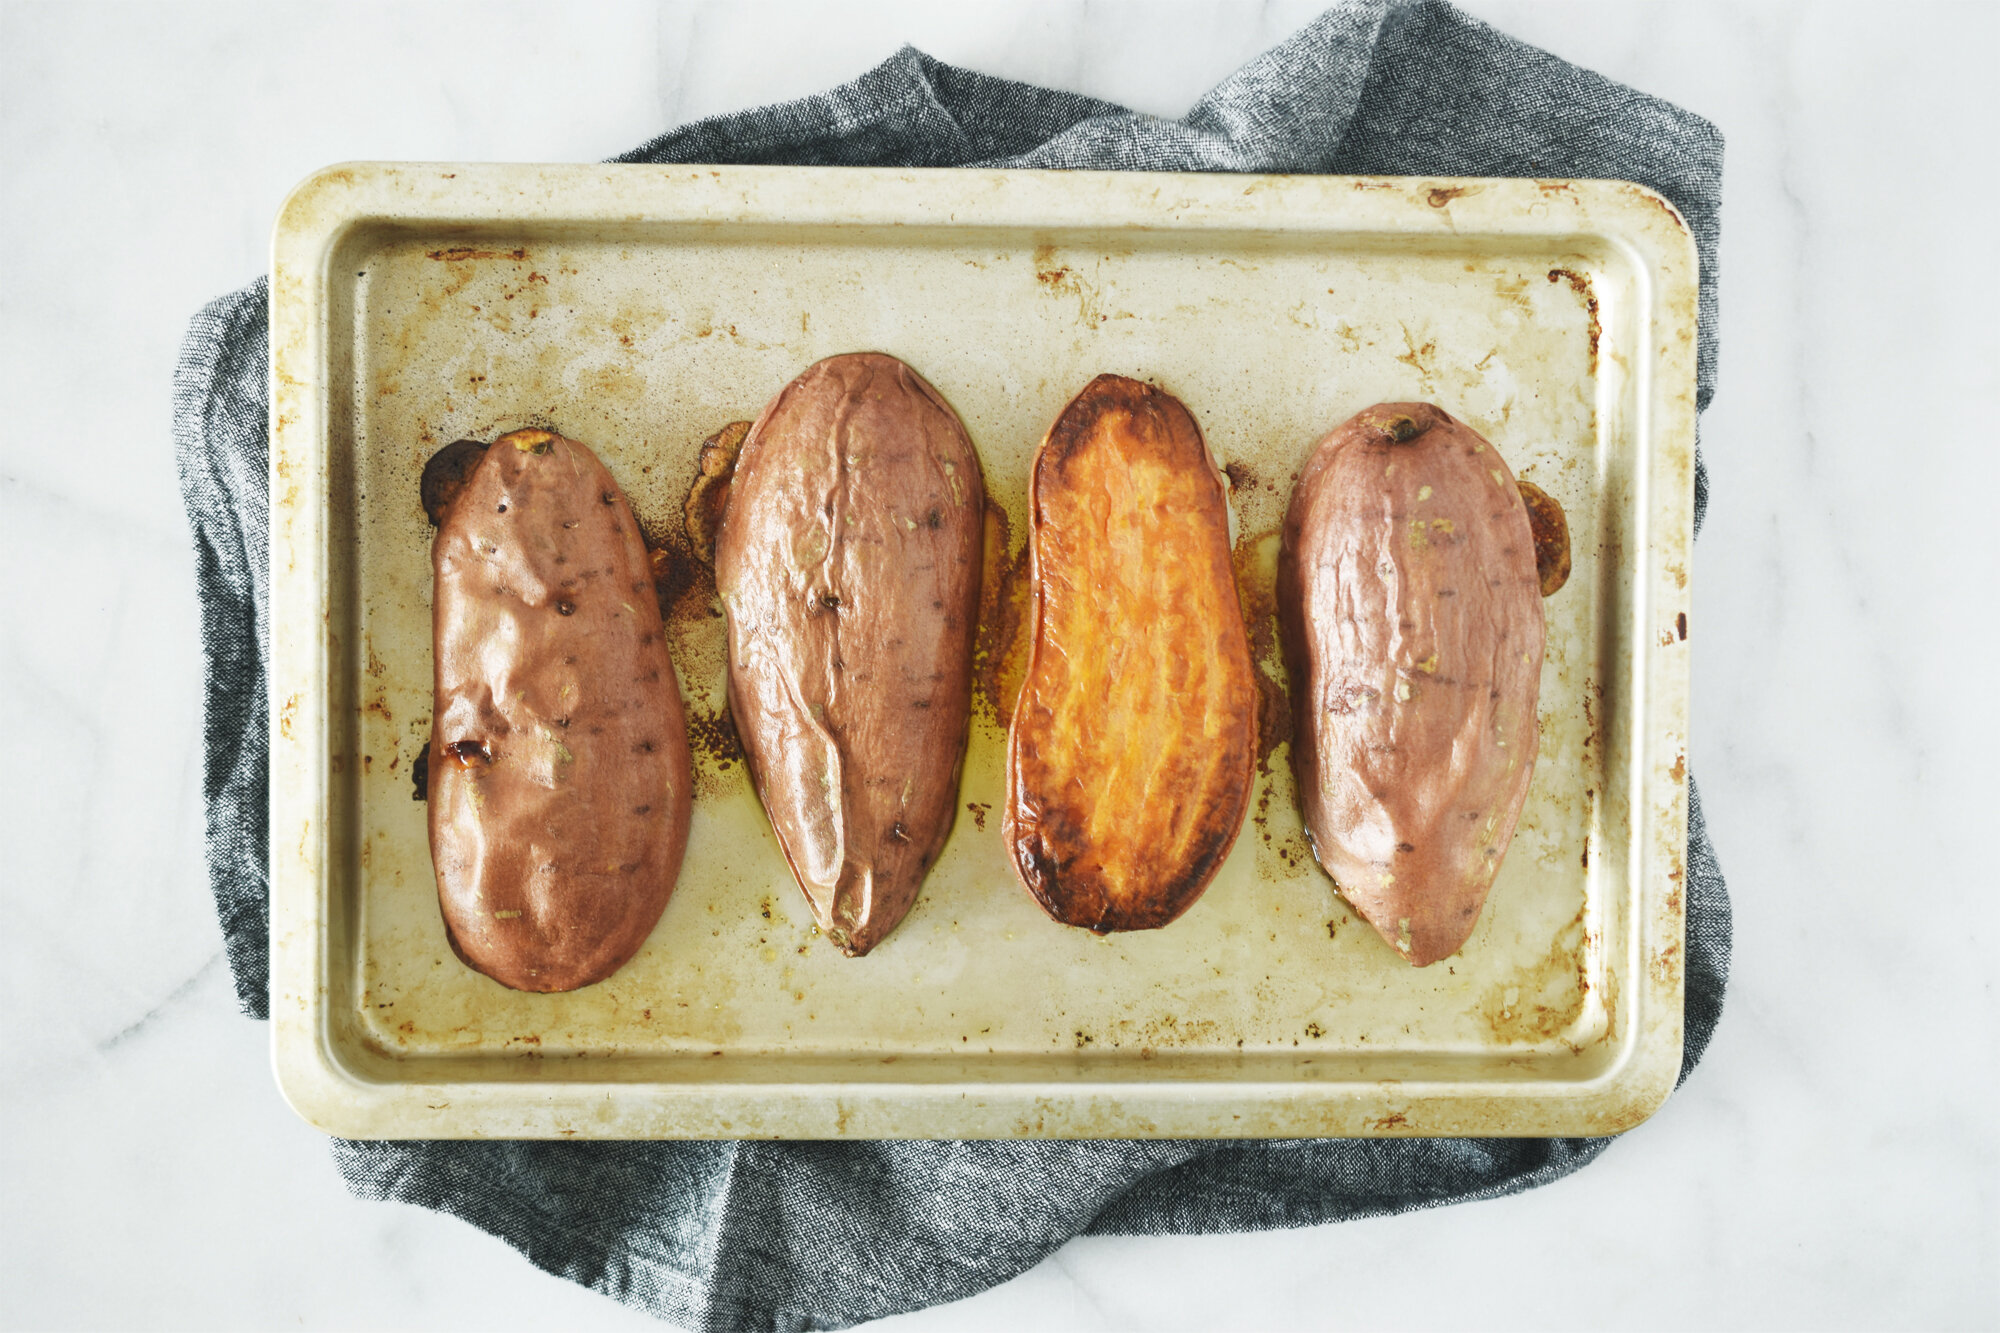 The best and easiest way to bake sweet potatoes